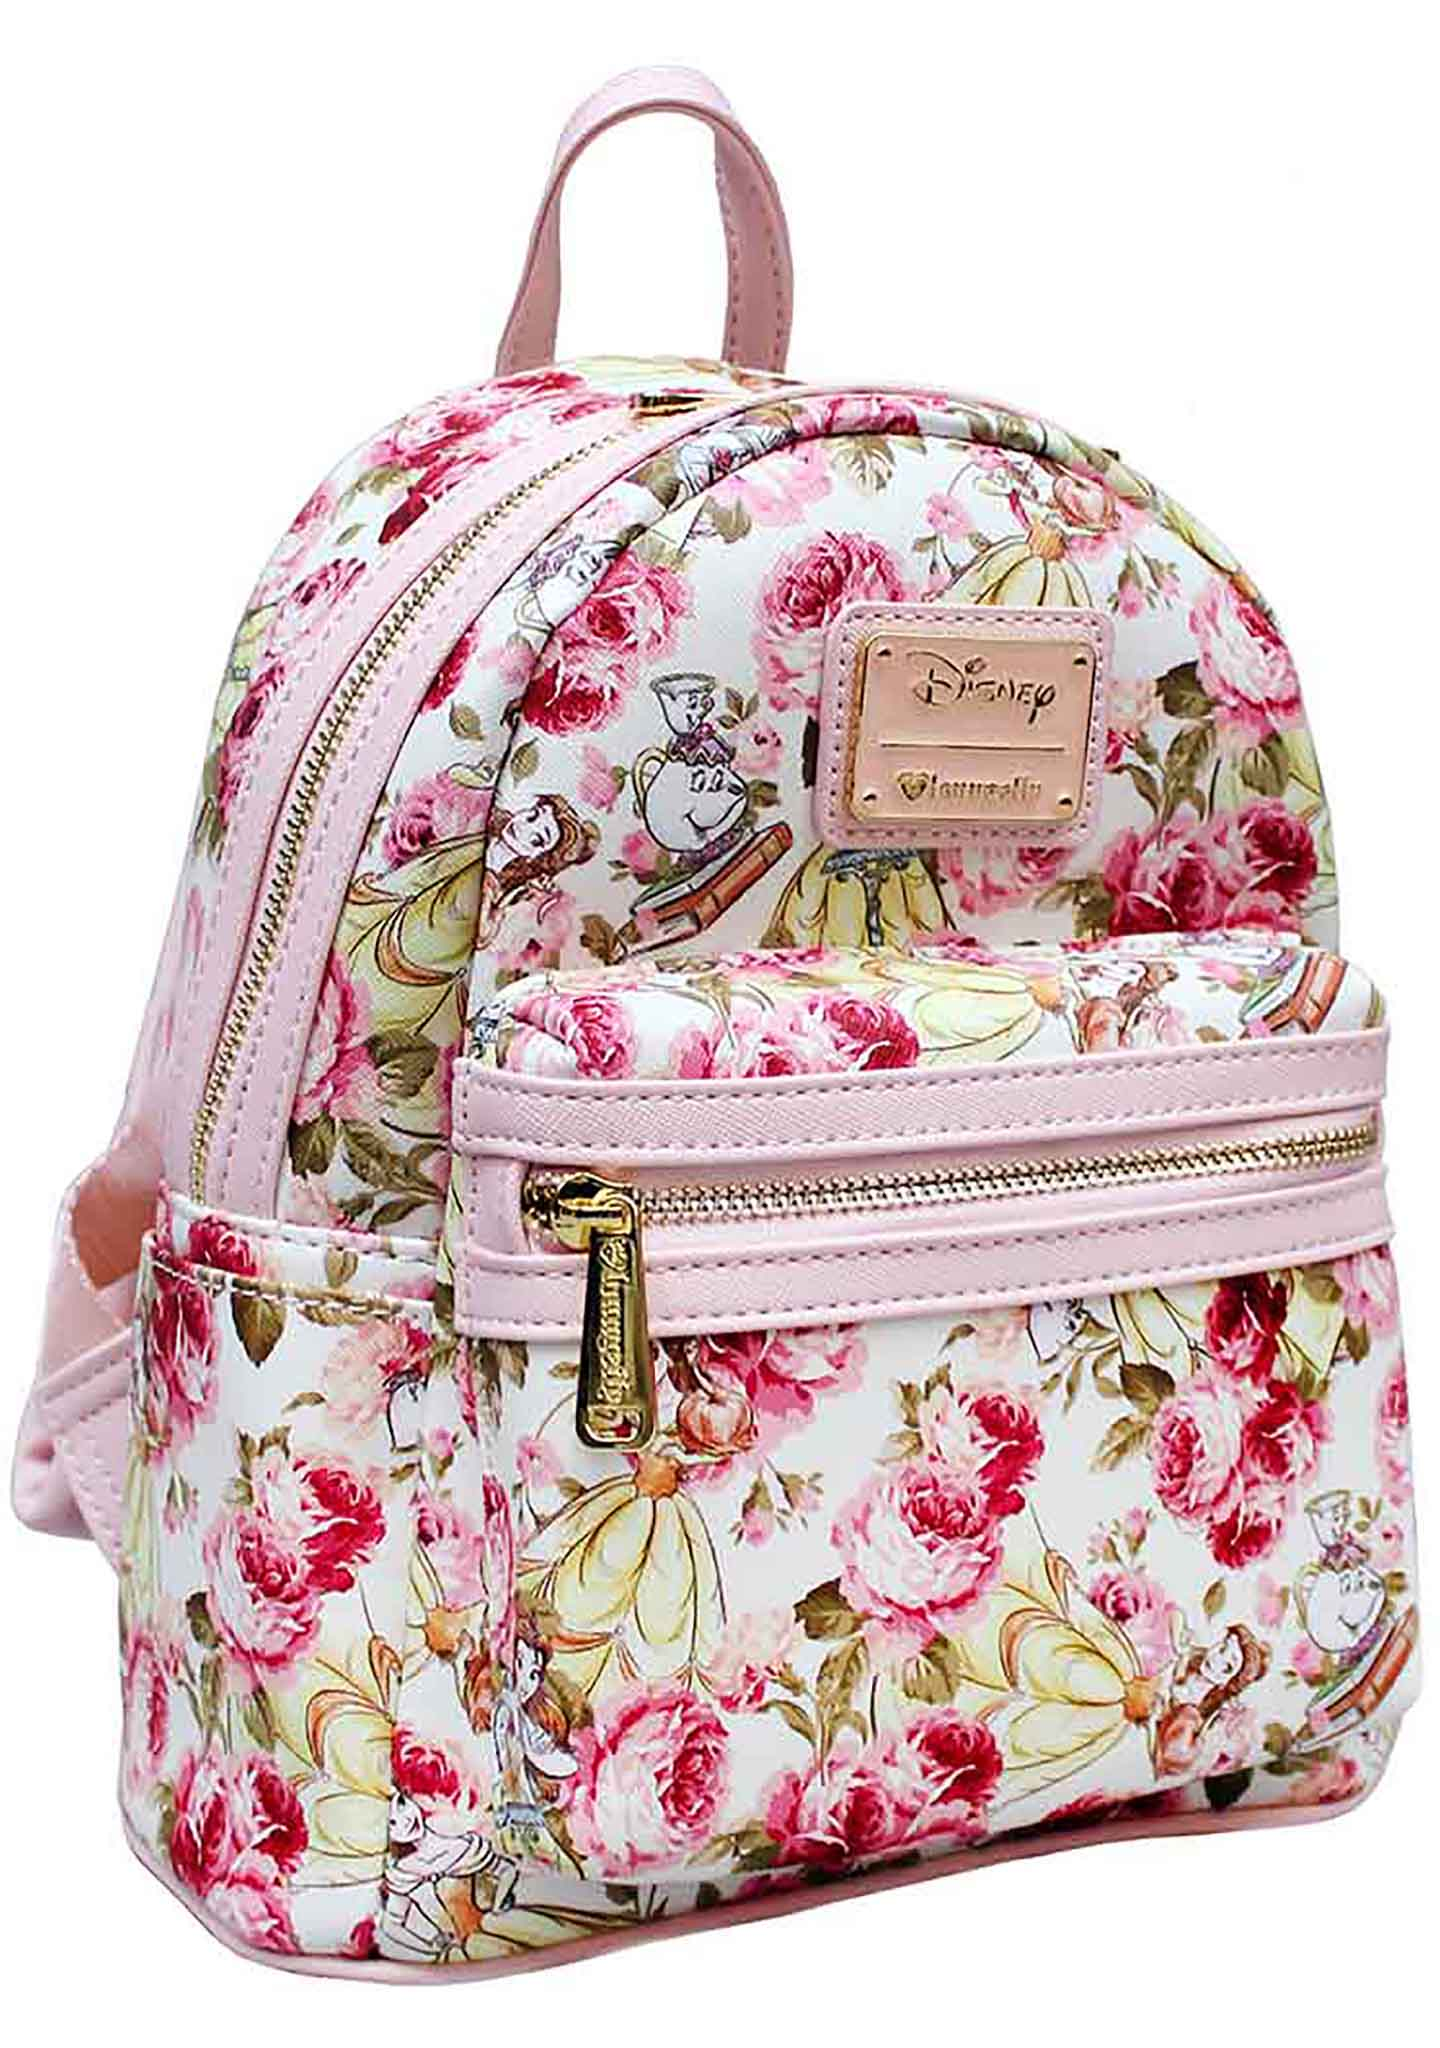 Loungefly X Disney Belle Floral AOP Mini Backpack